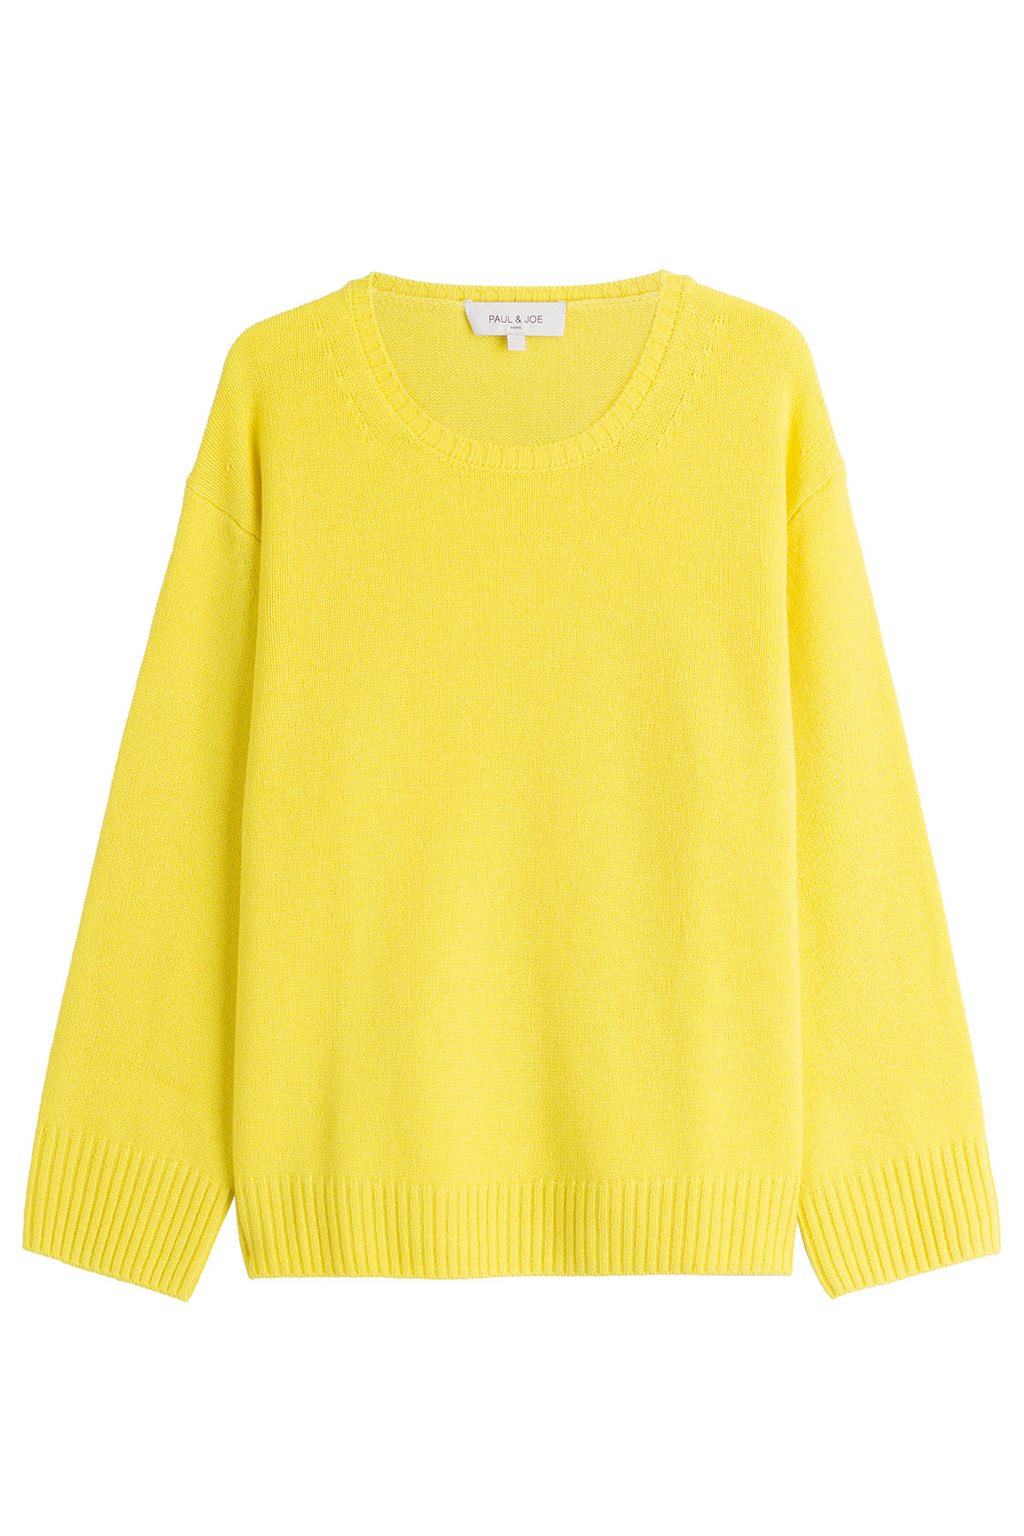 Cashmere Pullover Yellow - pattern: plain; style: standard; predominant colour: yellow; occasions: casual; length: standard; fit: standard fit; neckline: crew; fibres: cashmere - 100%; sleeve length: long sleeve; sleeve style: standard; texture group: knits/crochet; pattern type: knitted - fine stitch; season: s/s 2016